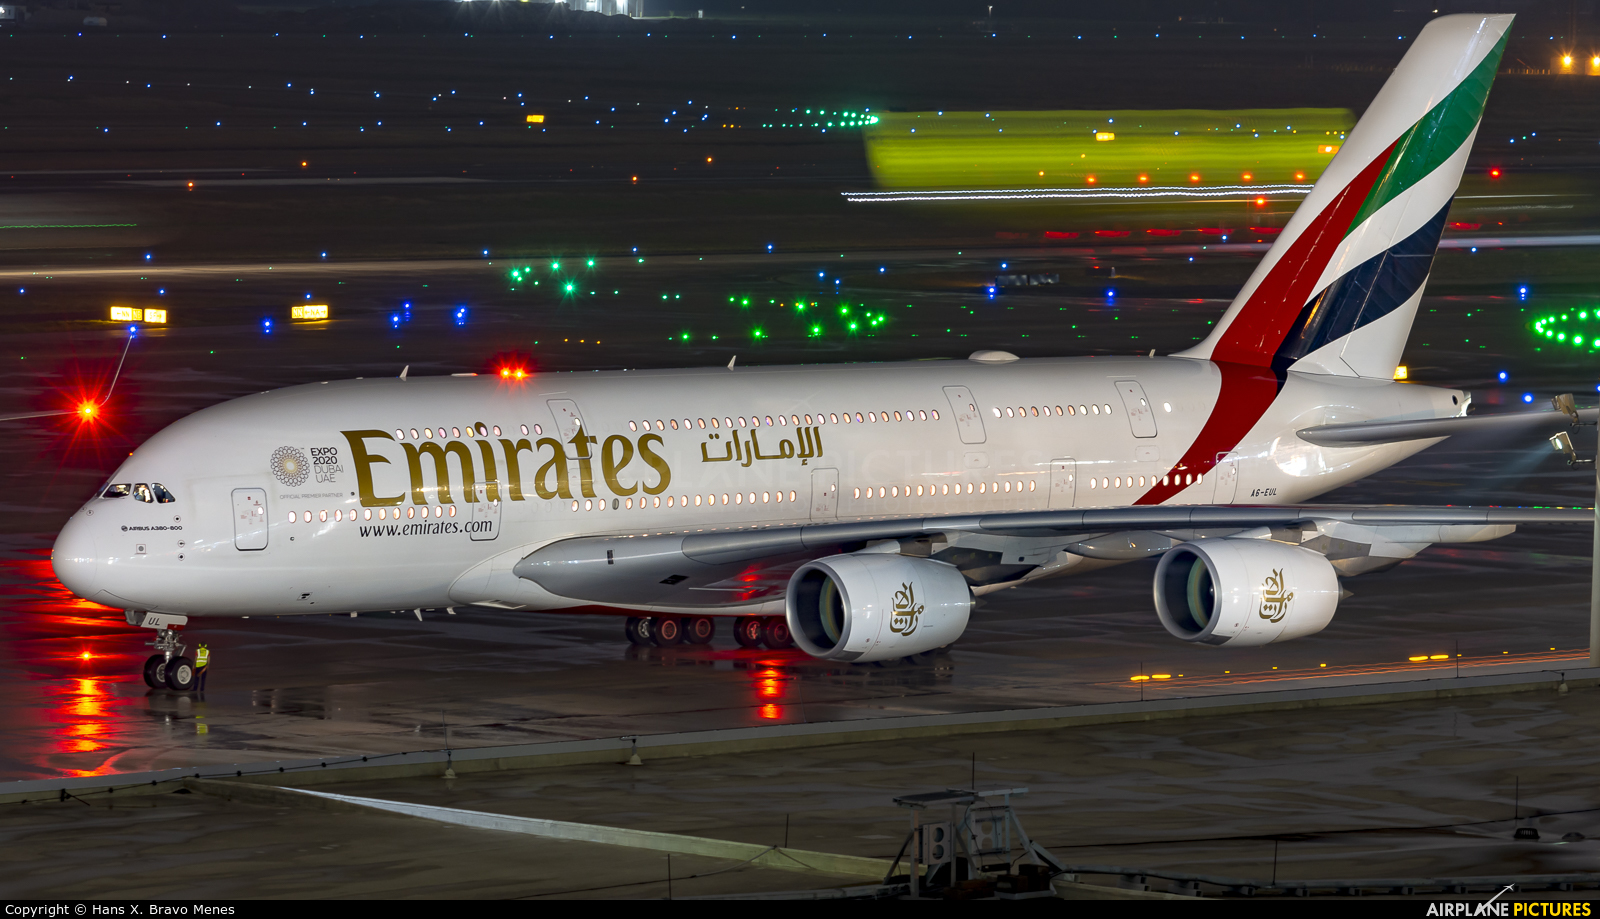 Emirates Airlines A6-EUL aircraft at Houston - George Bush Intl